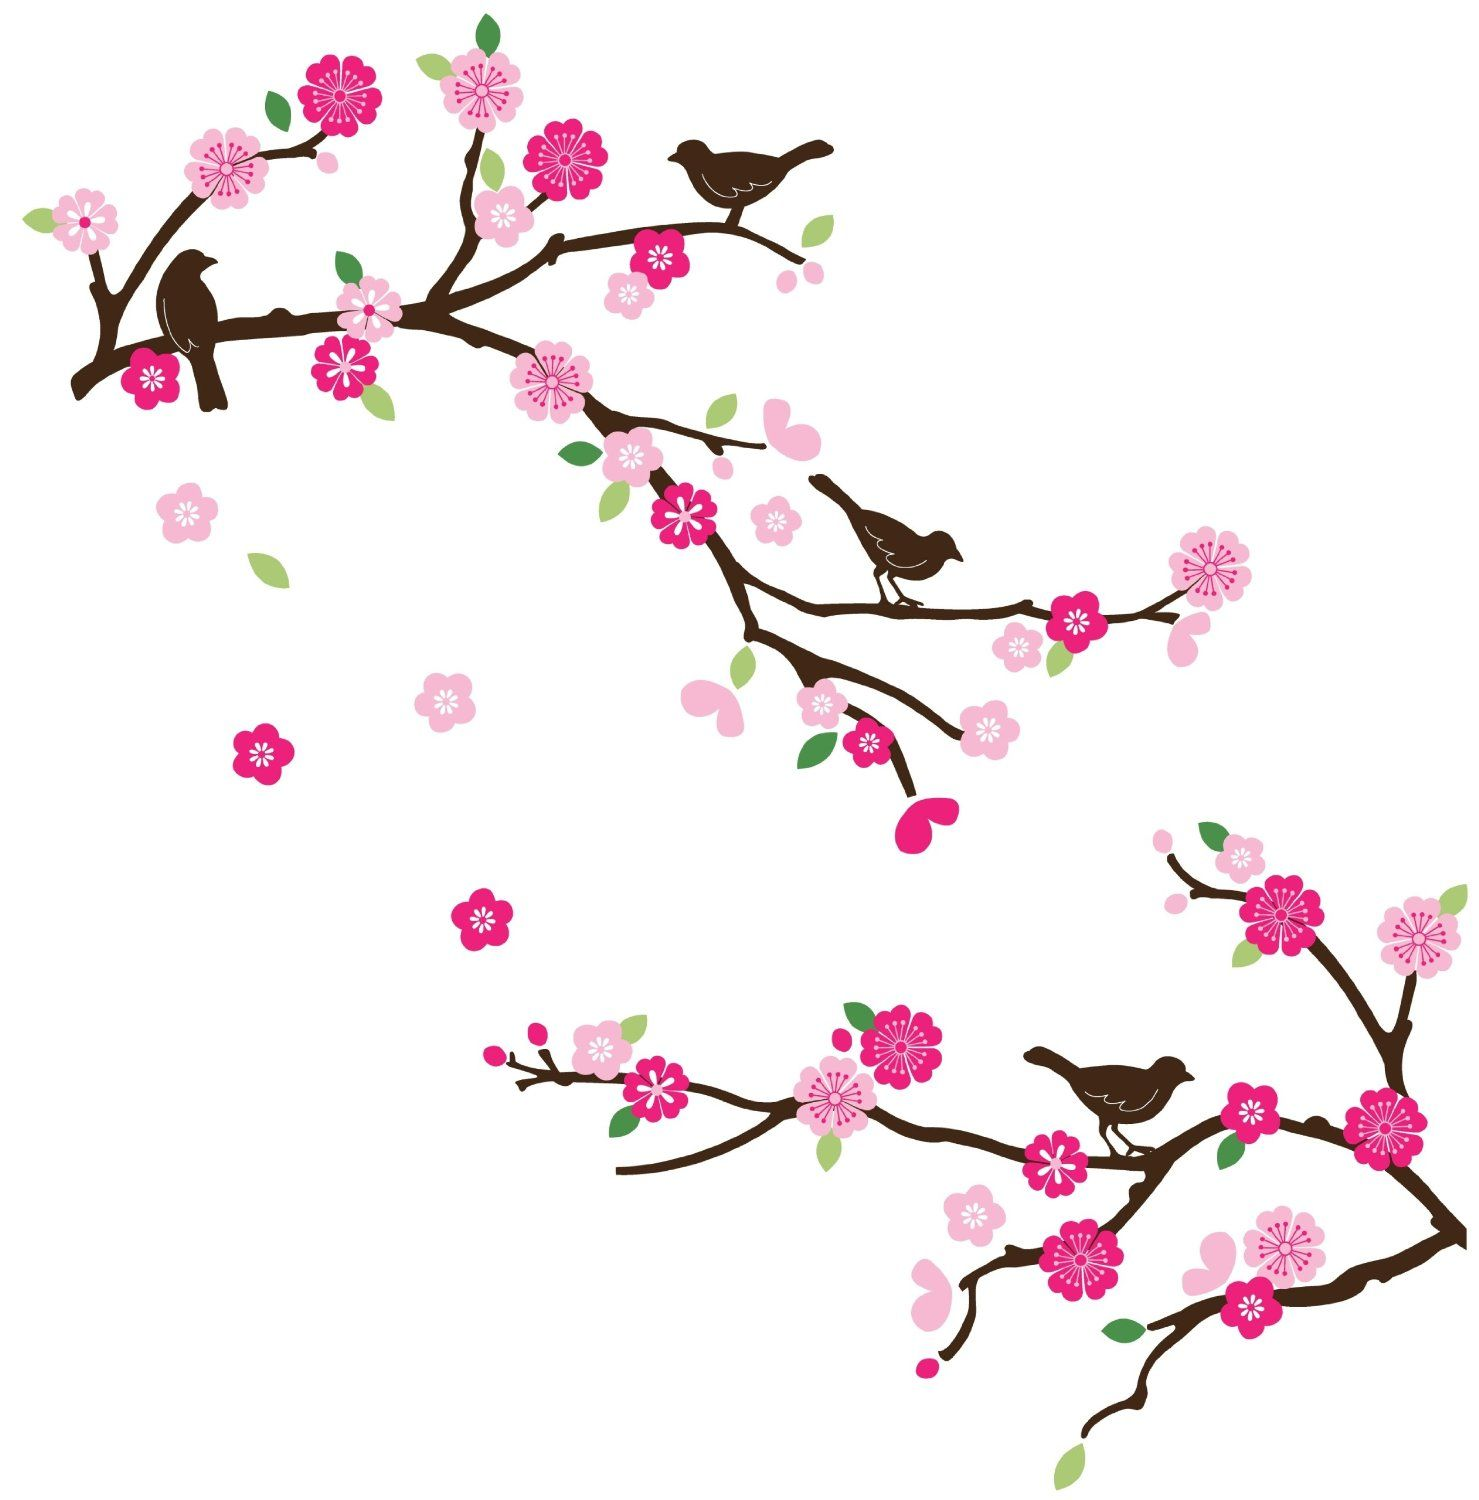 Amazon cherrycreek decals cherry blossom birds decorative amazon cherrycreek decals cherry blossom birds decorative nurseryroom wall sticker amipublicfo Images